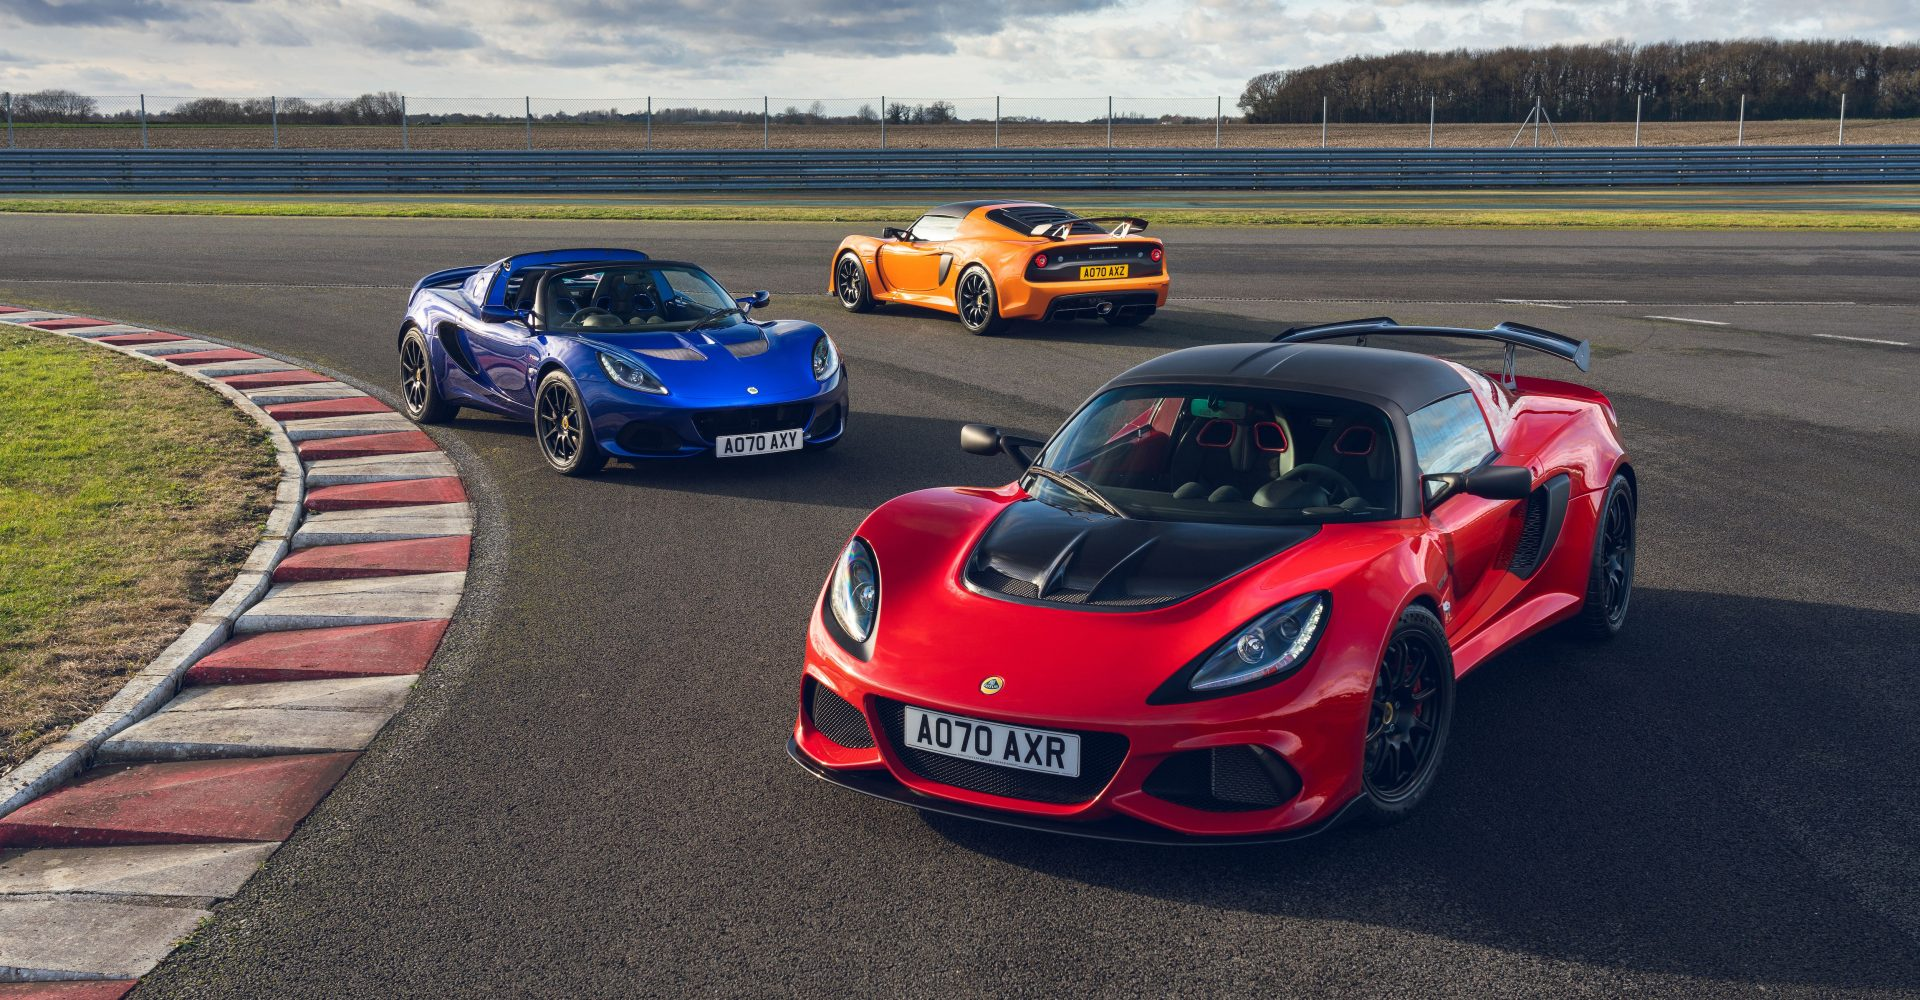 Lotus shares details of Elise and Exige Final Editions models